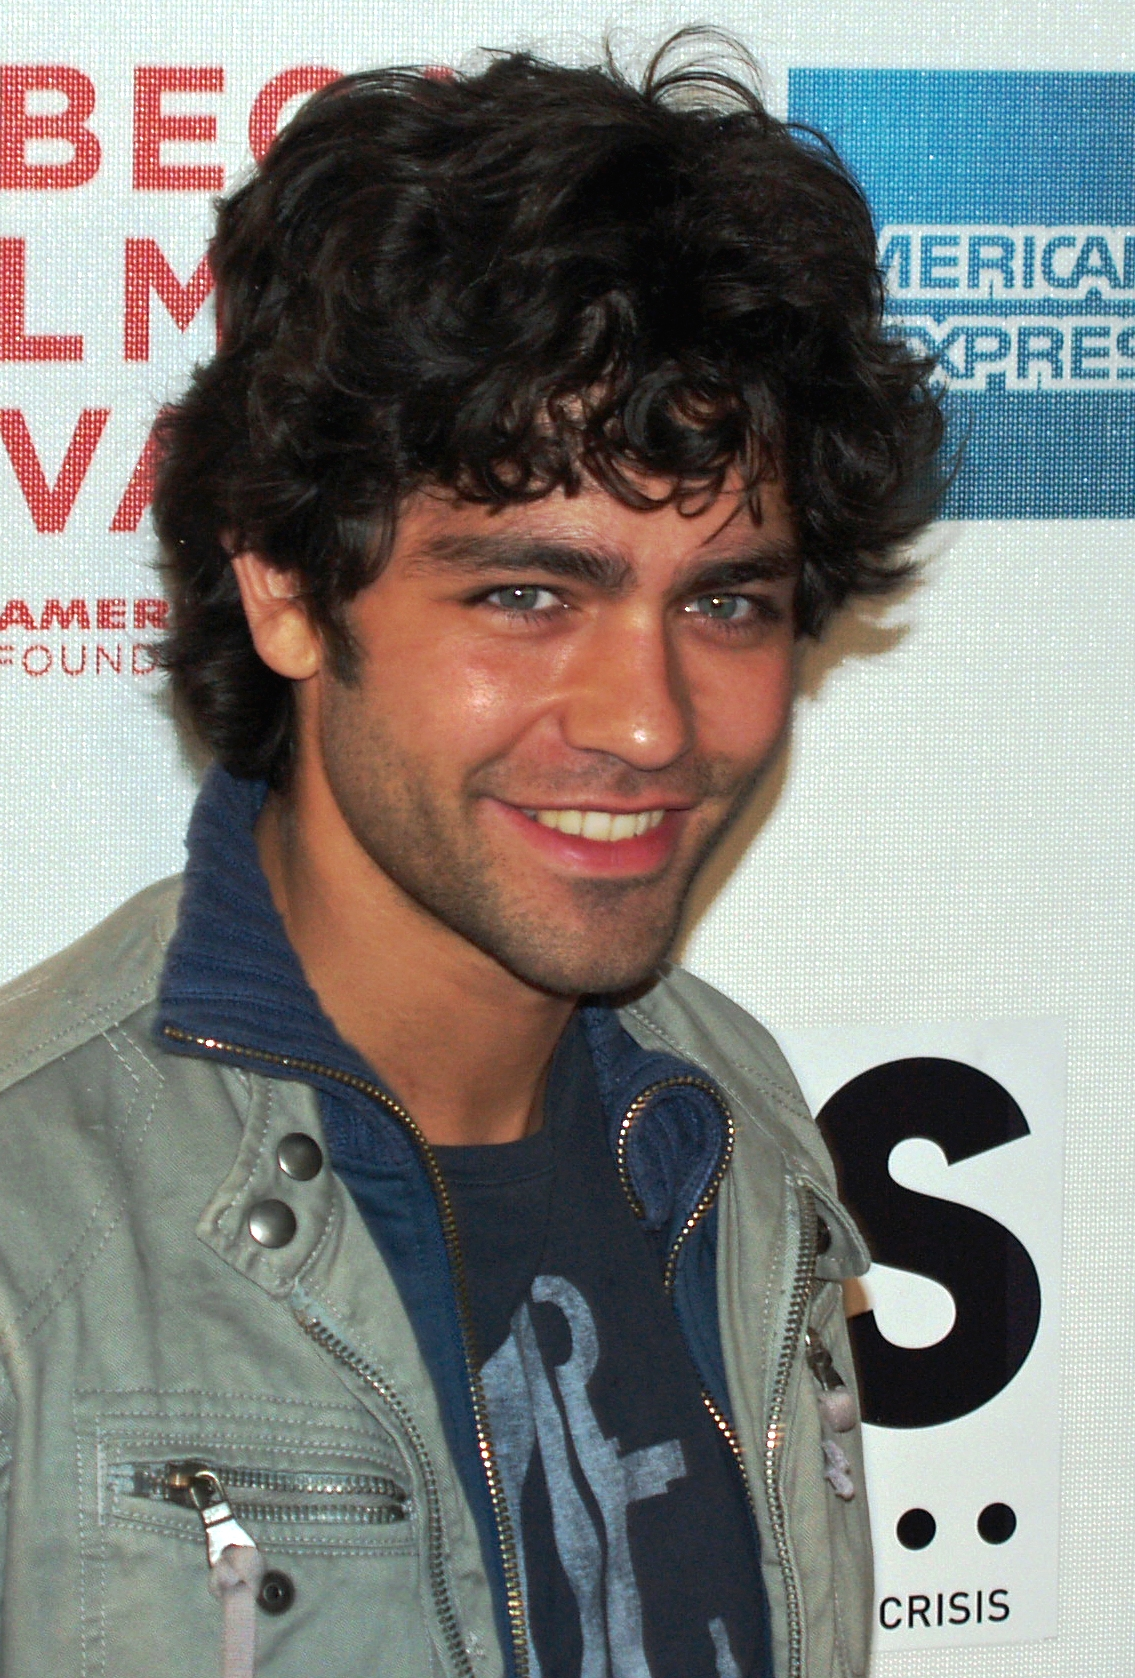 adrian grenier and barbara palvinadrian grenier wikipedia, adrian grenier and barbara palvin, adrian grenier wdw, adrian grenier kim kardashian, adrian grenier wife, adrian grenier sarah michelle gellar, adrian grenier gif, adrian grenier movies, adrian grenier instagram, adrian grenier films, adrian grenier entourage, adrian grenier private life, adrian grenier devil wears prada, adrian grenier biography, adrian grenier young, adrian grenier, adrian grenier net worth, adrian grenier height, adrian grenier imdb, adrian grenier twitter